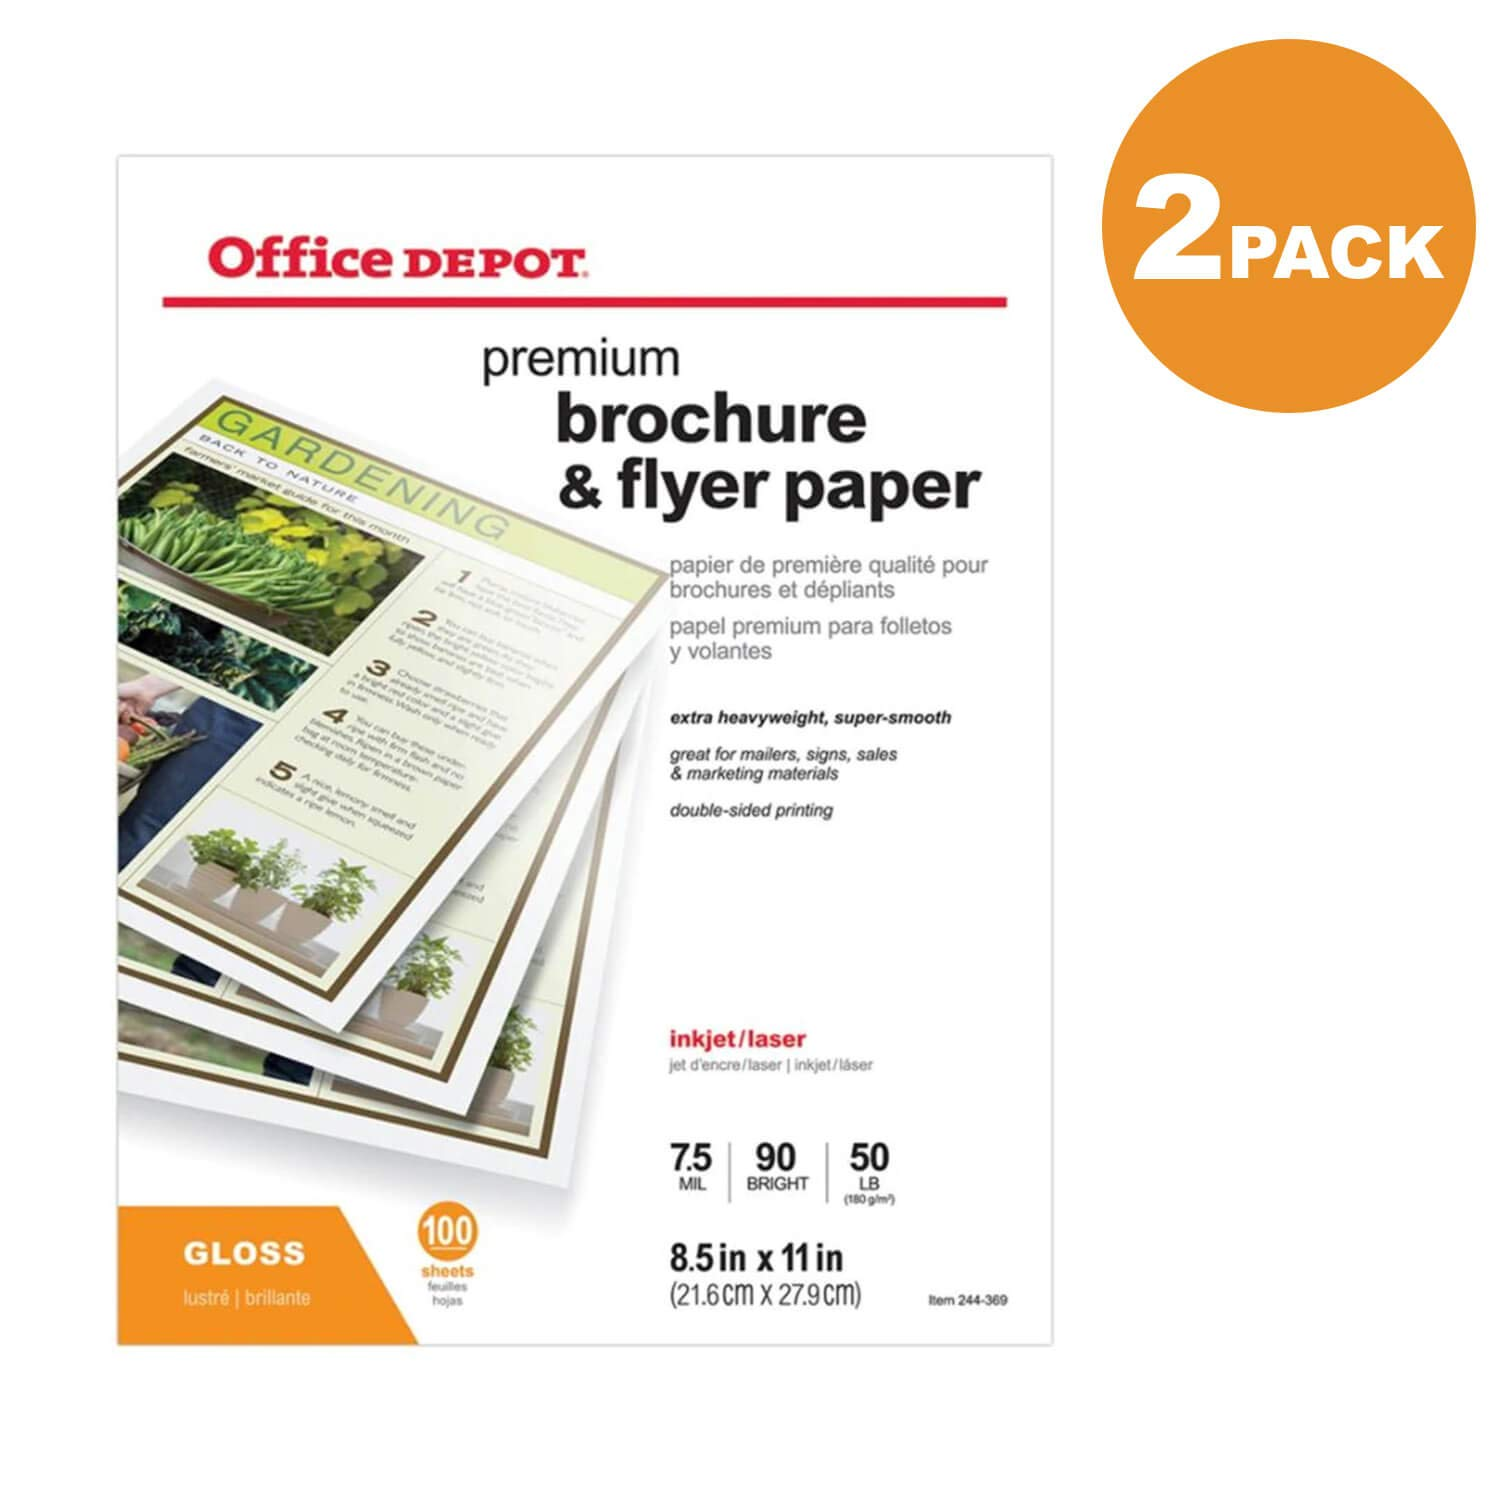 Office Depot Professional Brochure and Flyer Paper, Glossy, 8 1/2in. x 11in, 50 Lb, 2-Pack of 100 Sheets Each by Bundle Savings